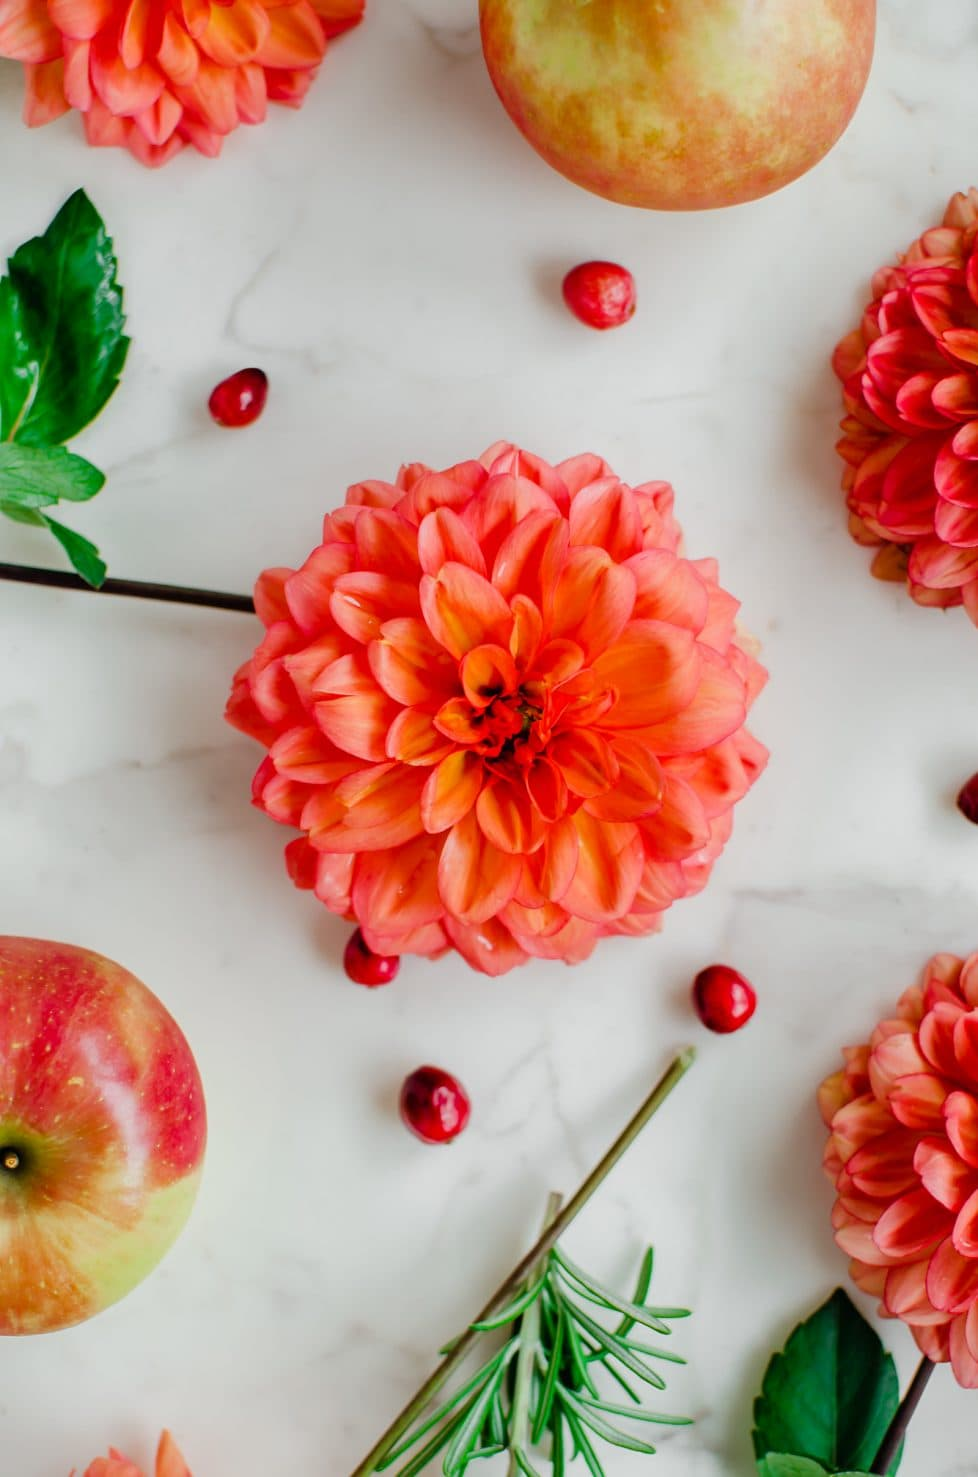 Dahlia flowers laid on a white counter top with apples, rosemary, and fresh cranberries.